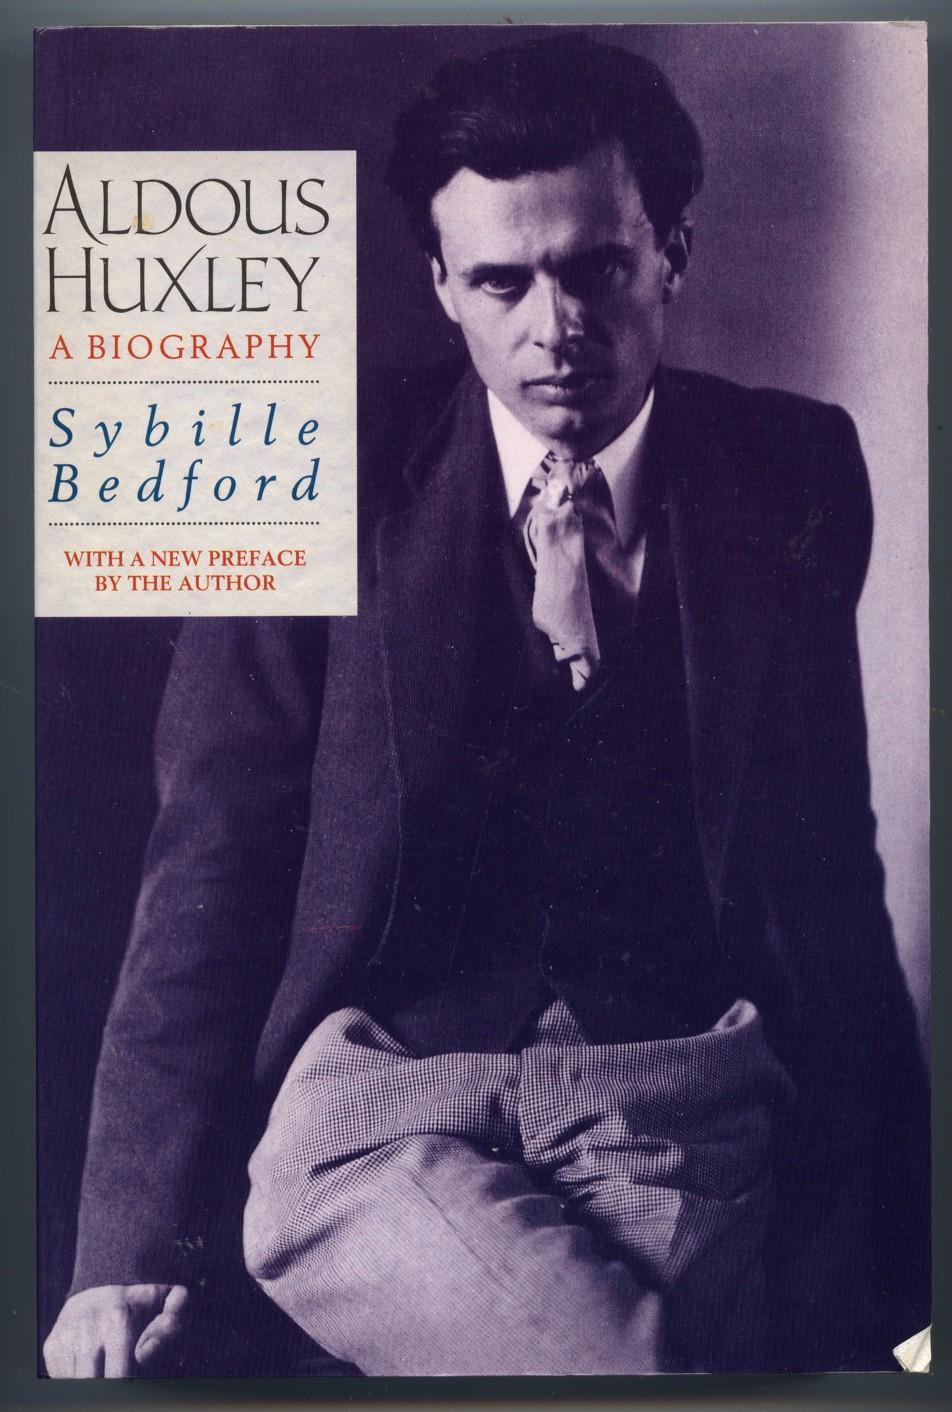 Aldous Huxley (2 Volume Set: A Biography